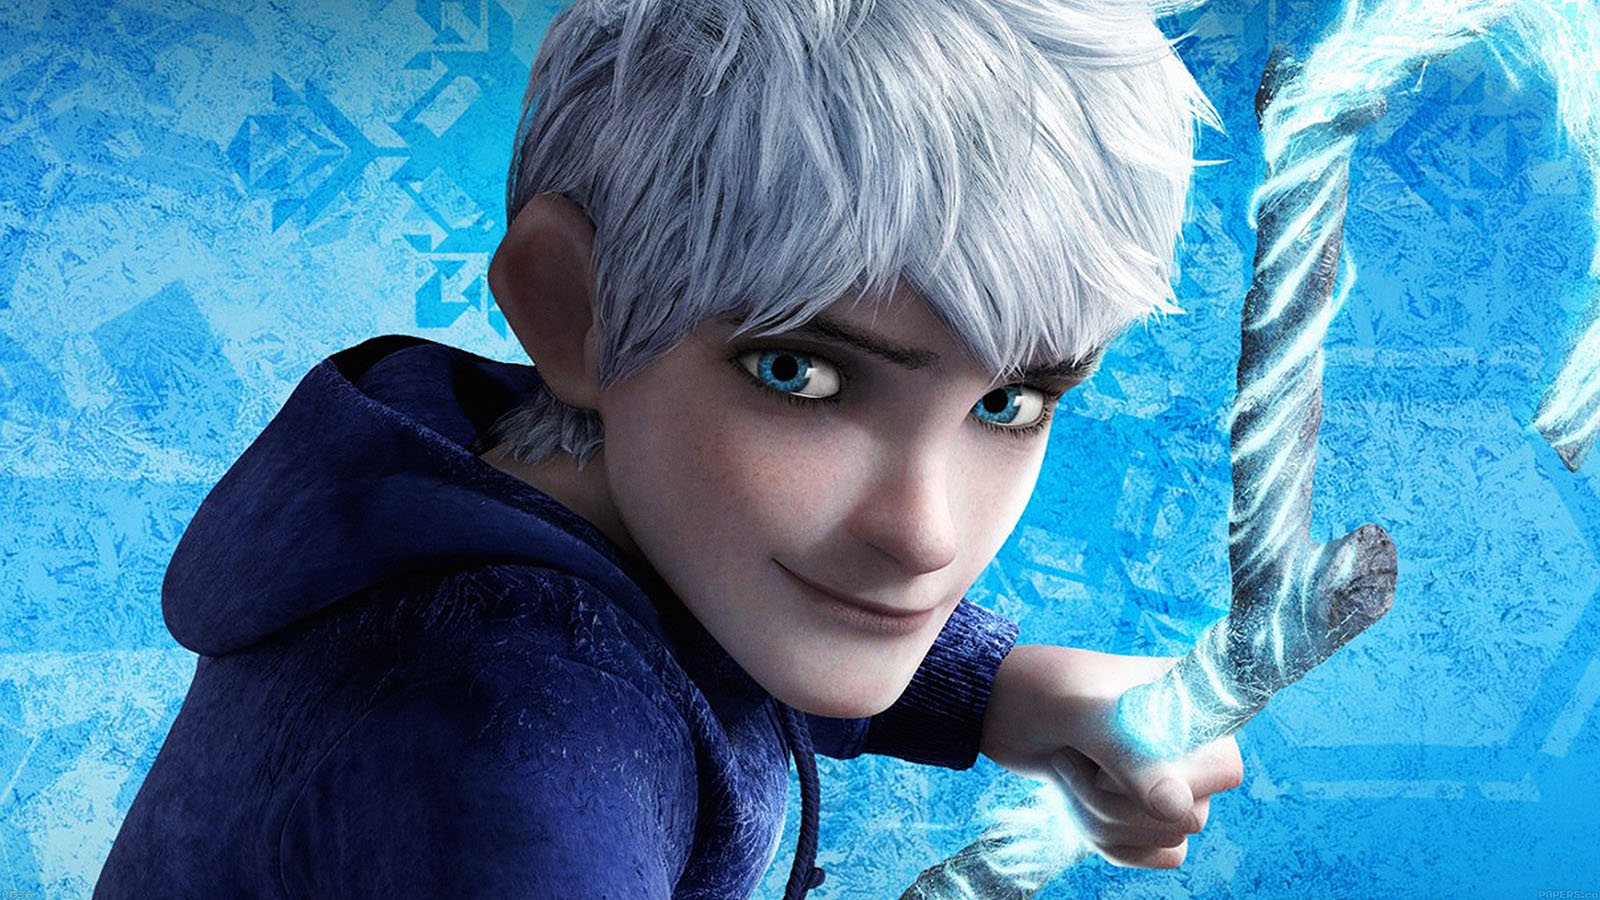 Car Logo Wallpaper Iphone 5 Ac36 Wallpaper Rise Of The Guardians Jack Frost Dreamworks